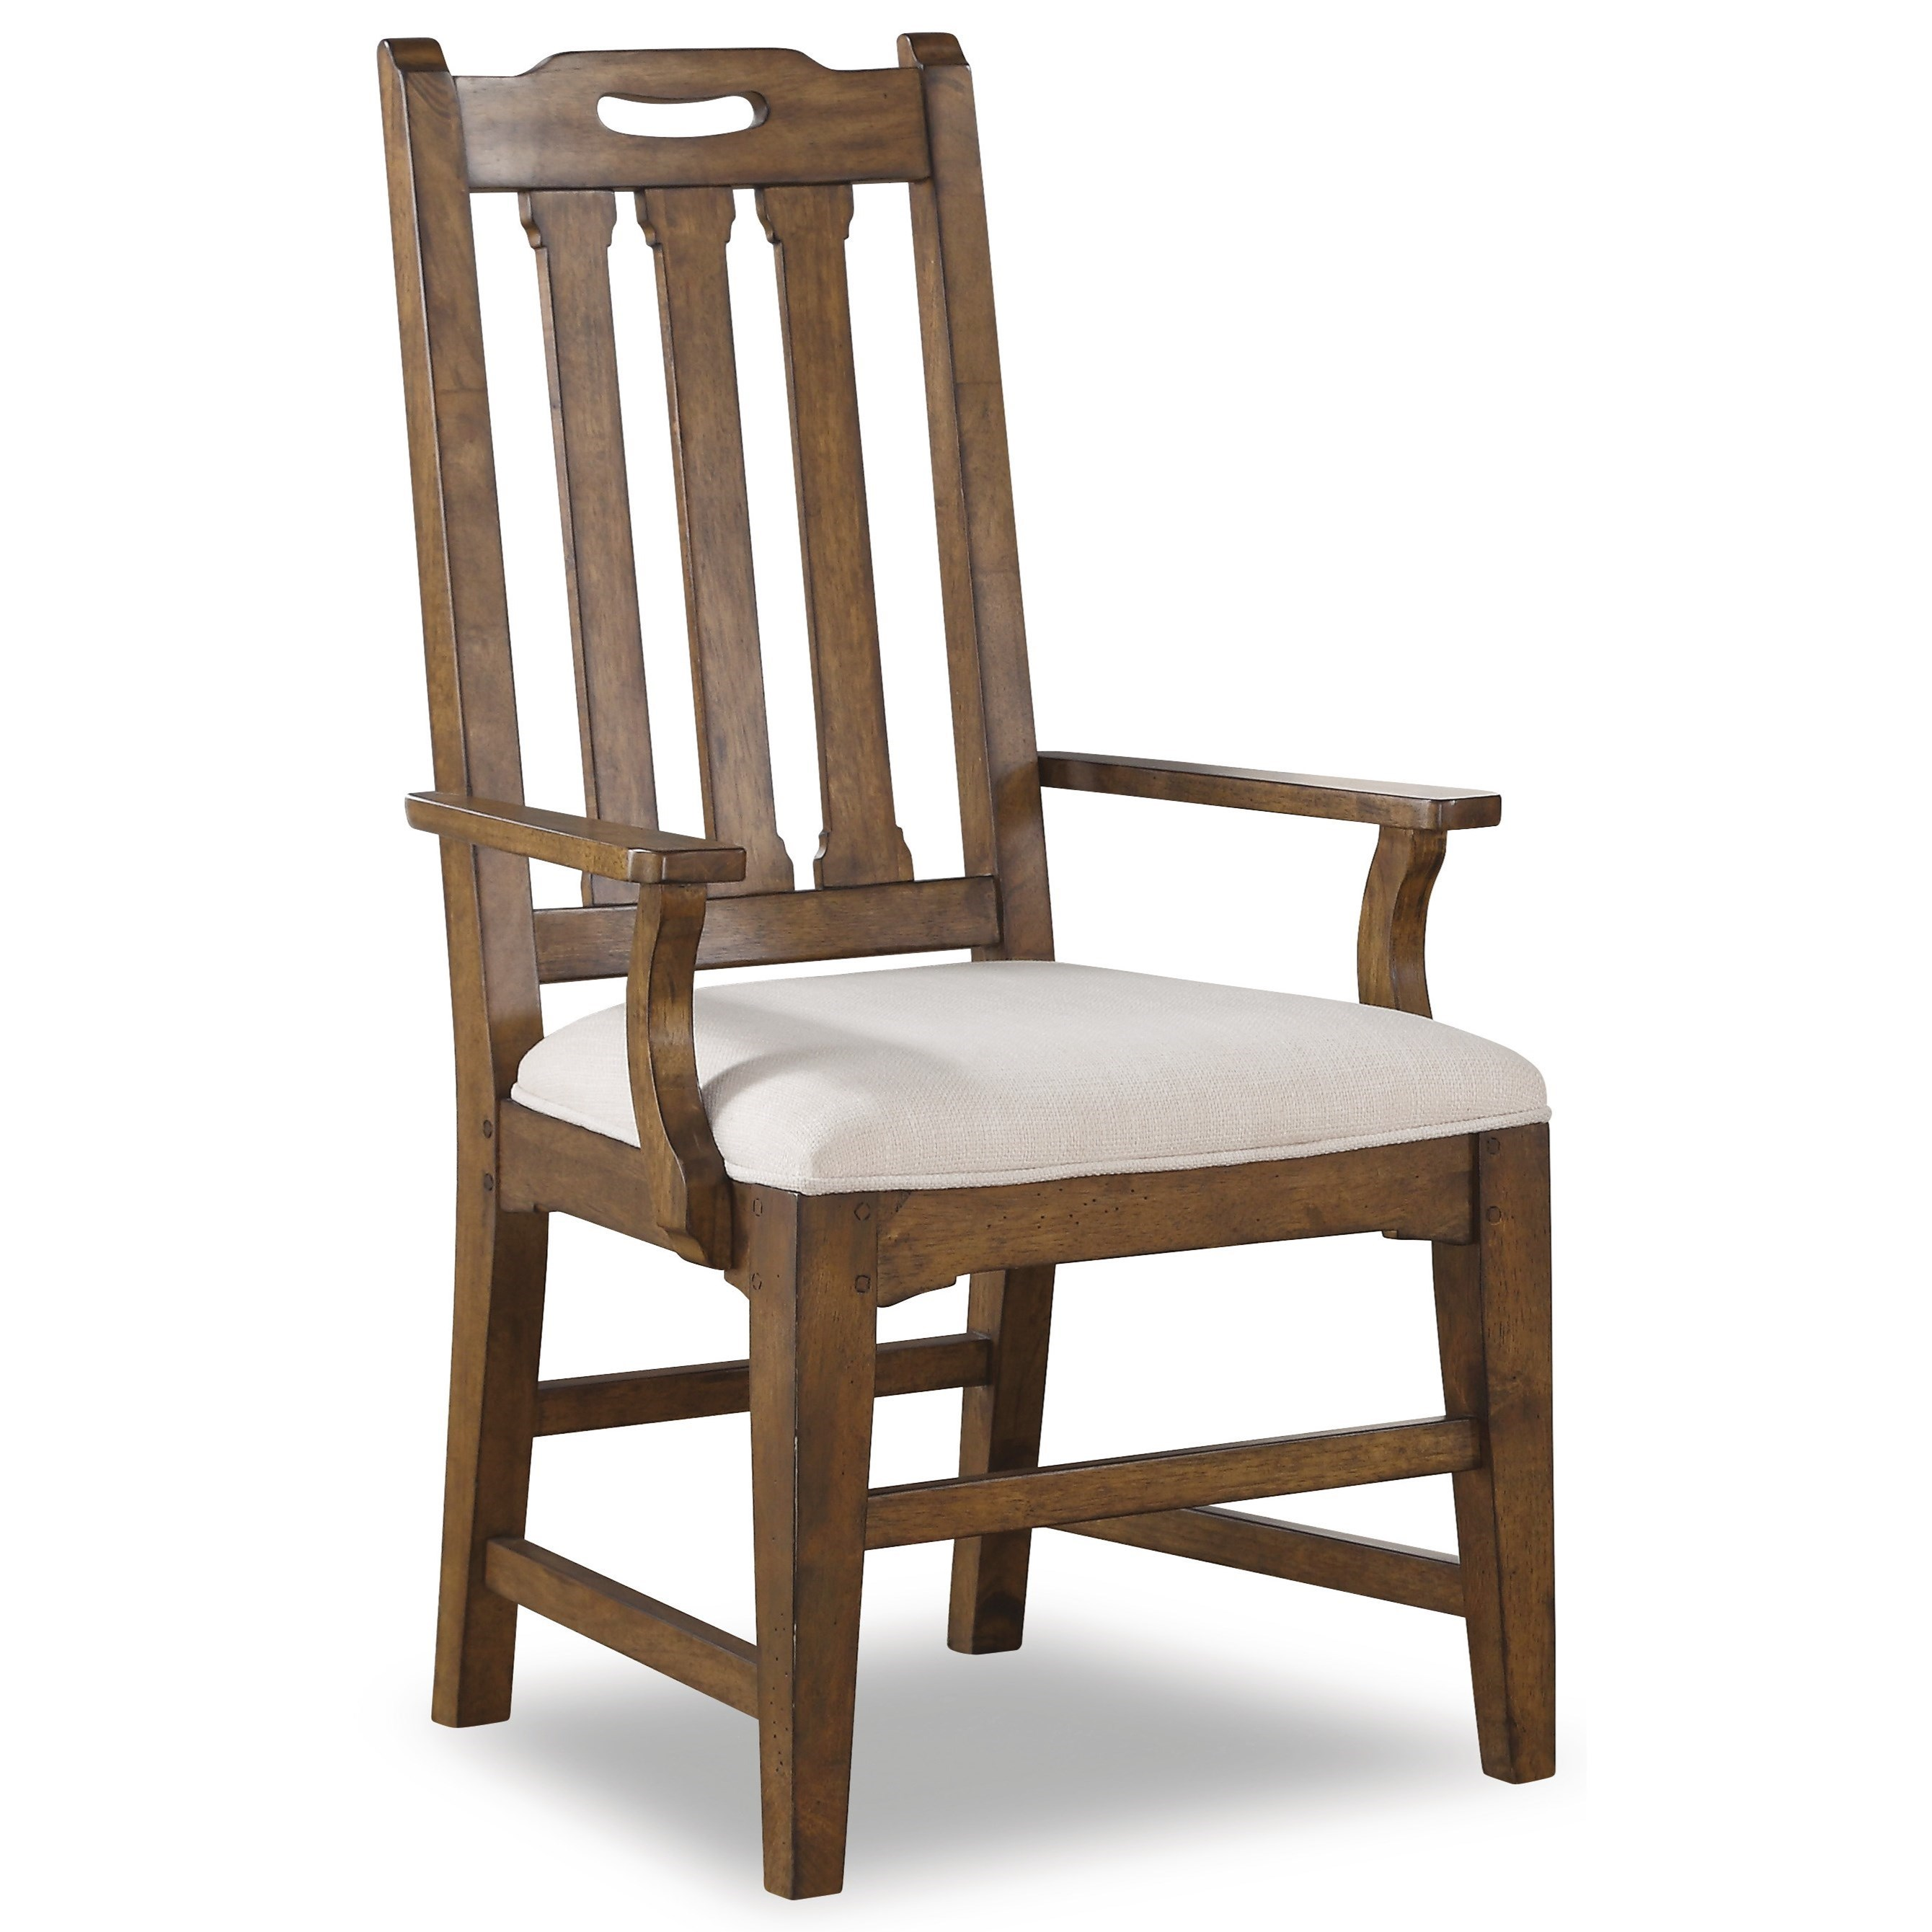 upholstered arm dining chair white high back chairs flexsteel wynwood collection sonora w1134 843 mission with slat dunk bright furniture